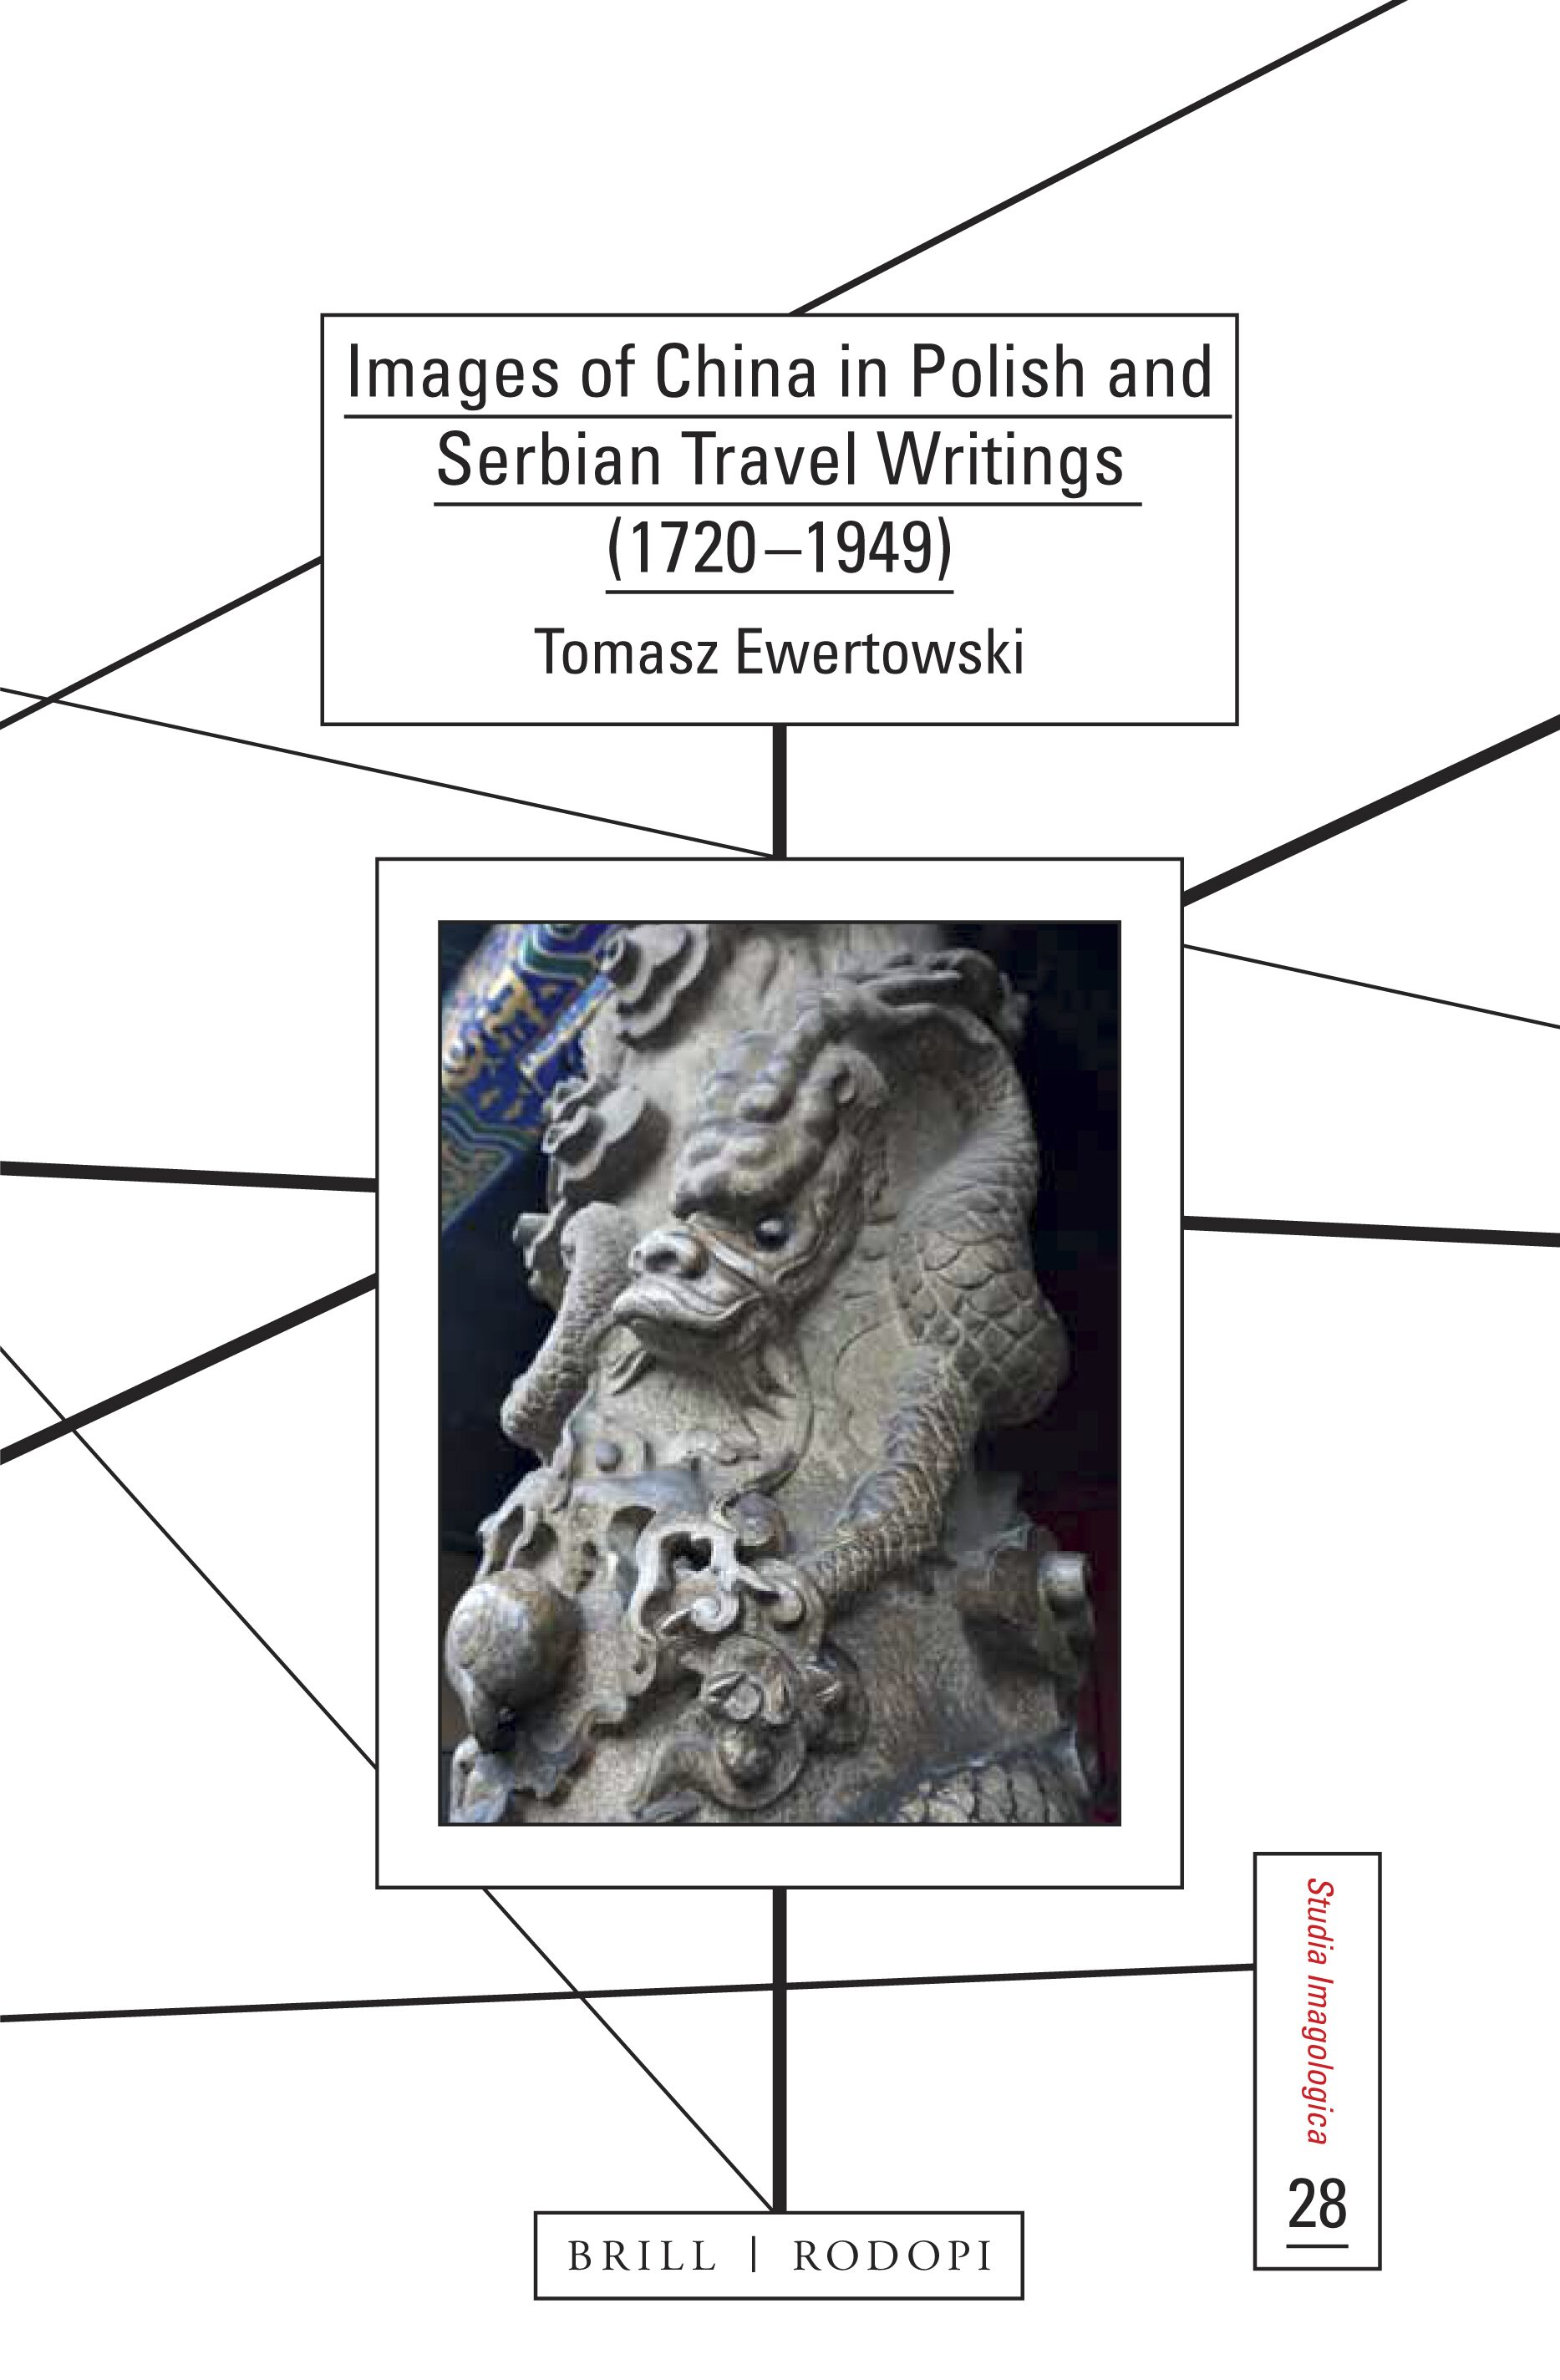 Chapter 2 Places Visited In Images Of China In Polish And Serbian Travel Writings 1720 1949